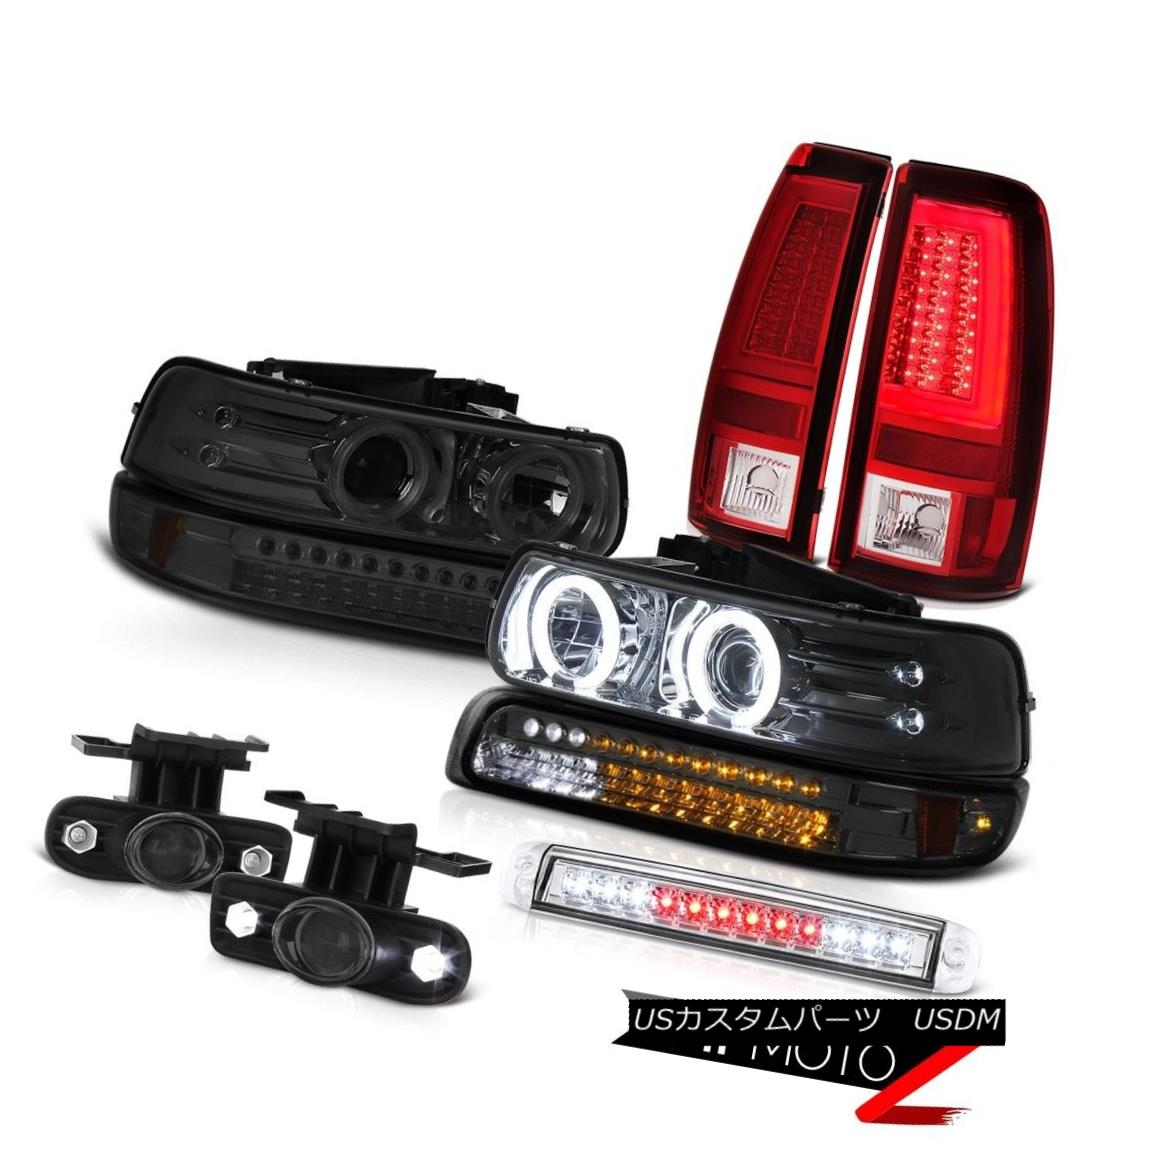 ヘッドライト 99-02 Silverado WT Taillamps Roof Cab Lamp Parking Headlamps Foglamps Brightest 99-02 Silverado WT Taillampsルーフキャブ用ランプパーキング用ヘッドランプフォグランプ